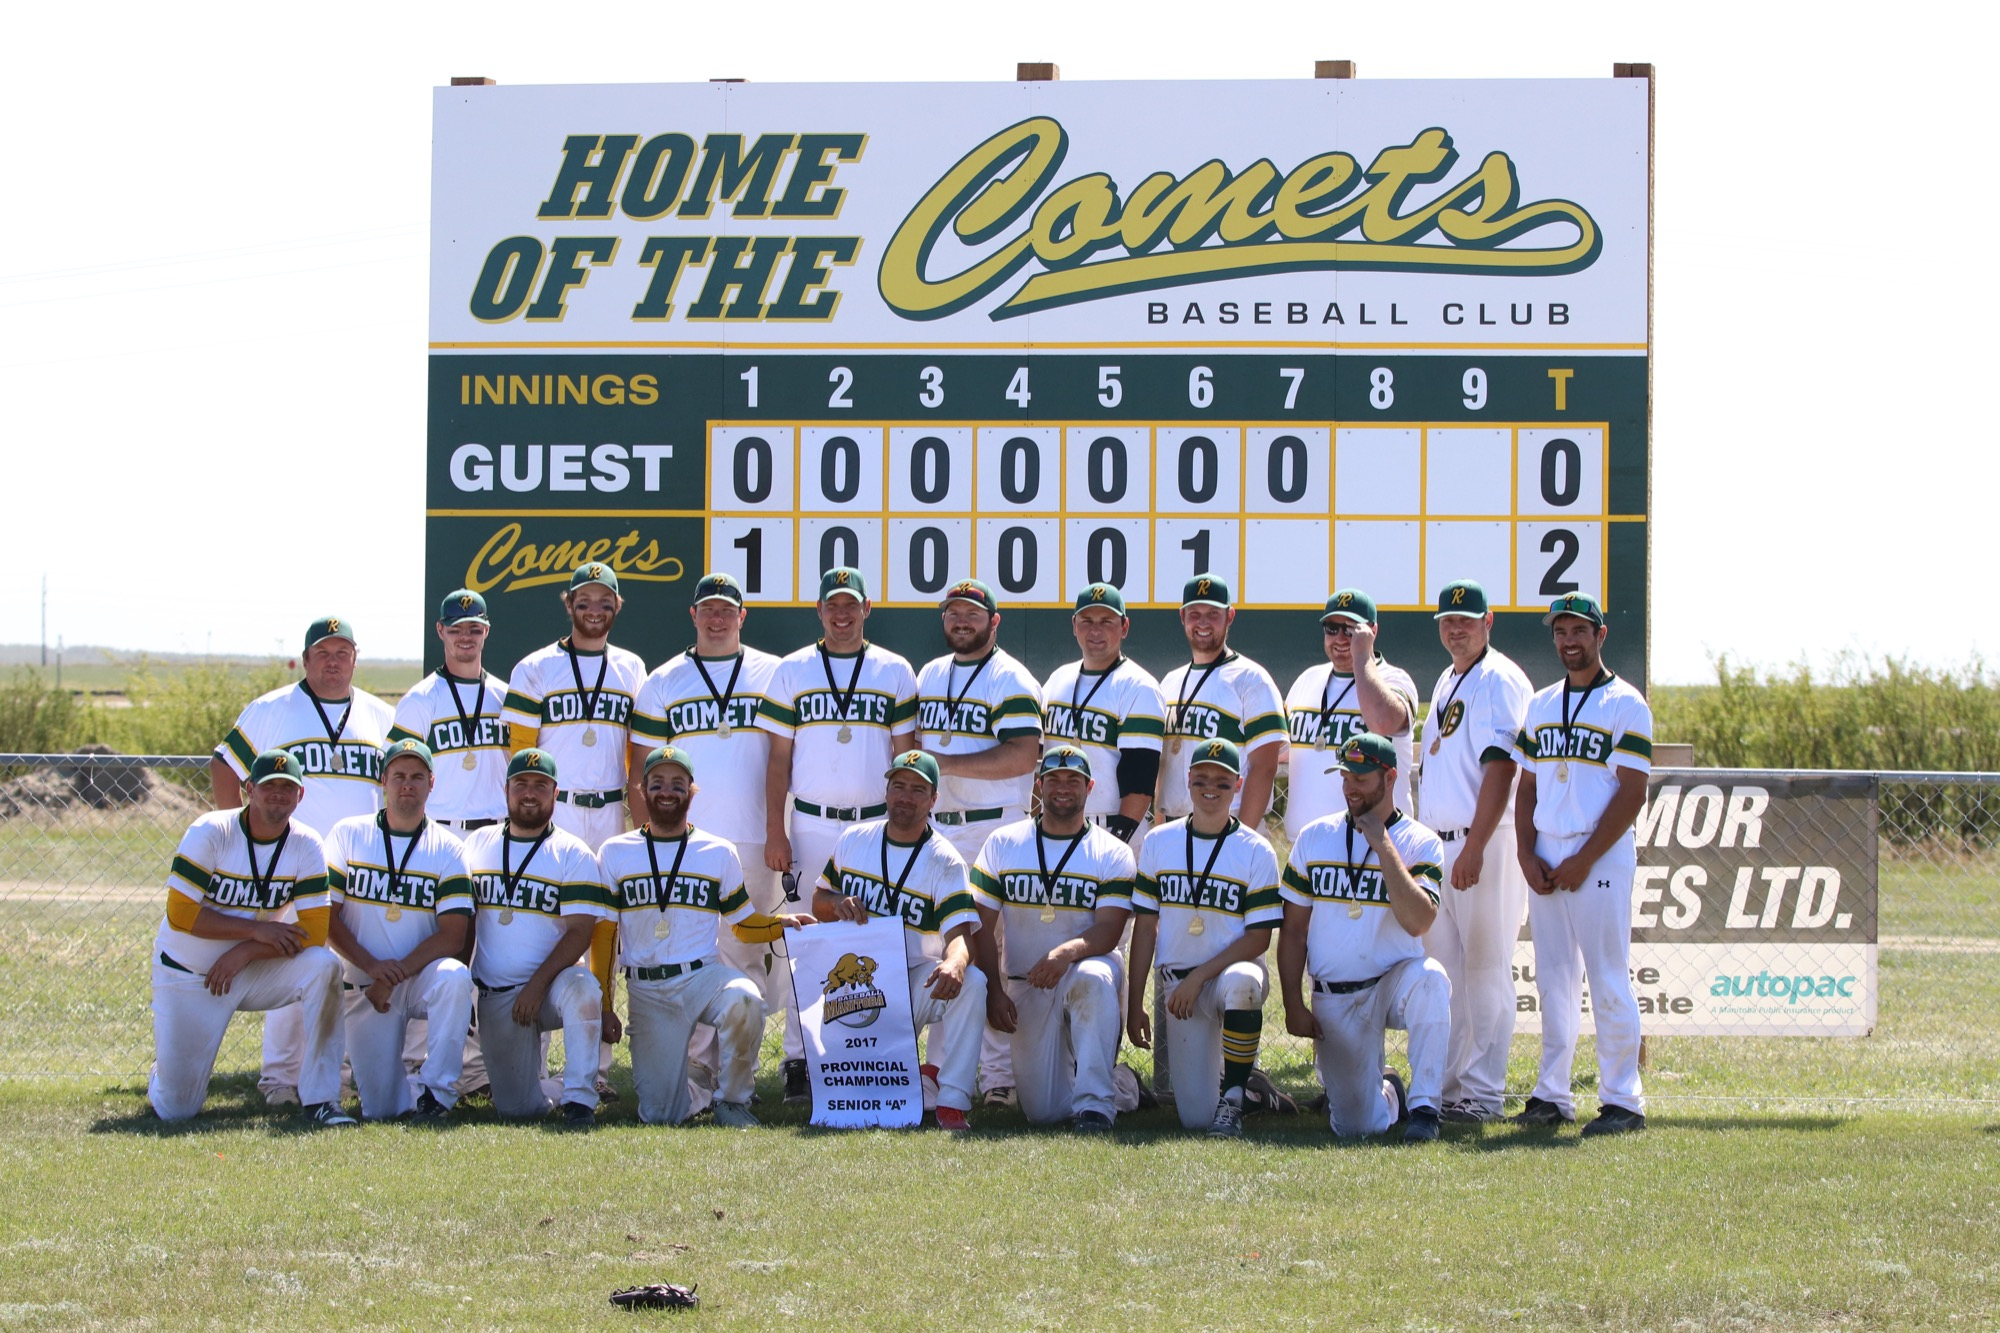 The Rivers Comets pose after winning the inaugural provincial senior A baseball championship last August. By reaching back to their roots and building for the future, the Comets have strengthened the game of baseball in Rivers.